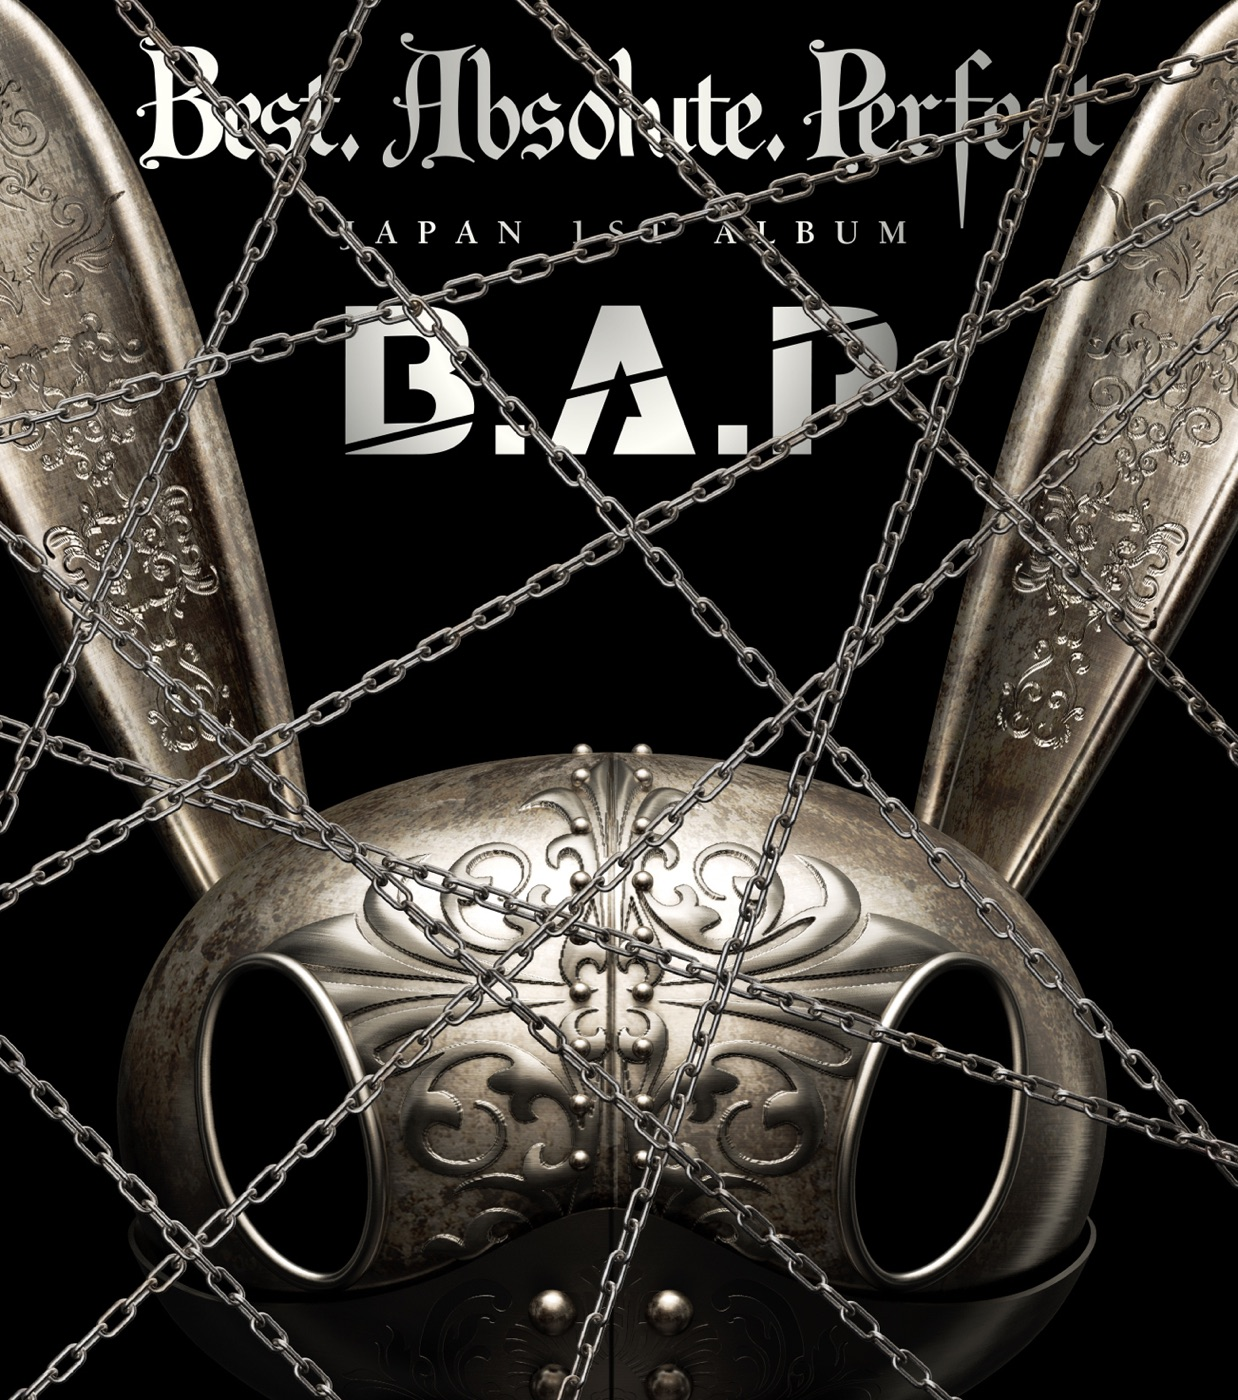 B.A.P - Best.Absolute.Perfect